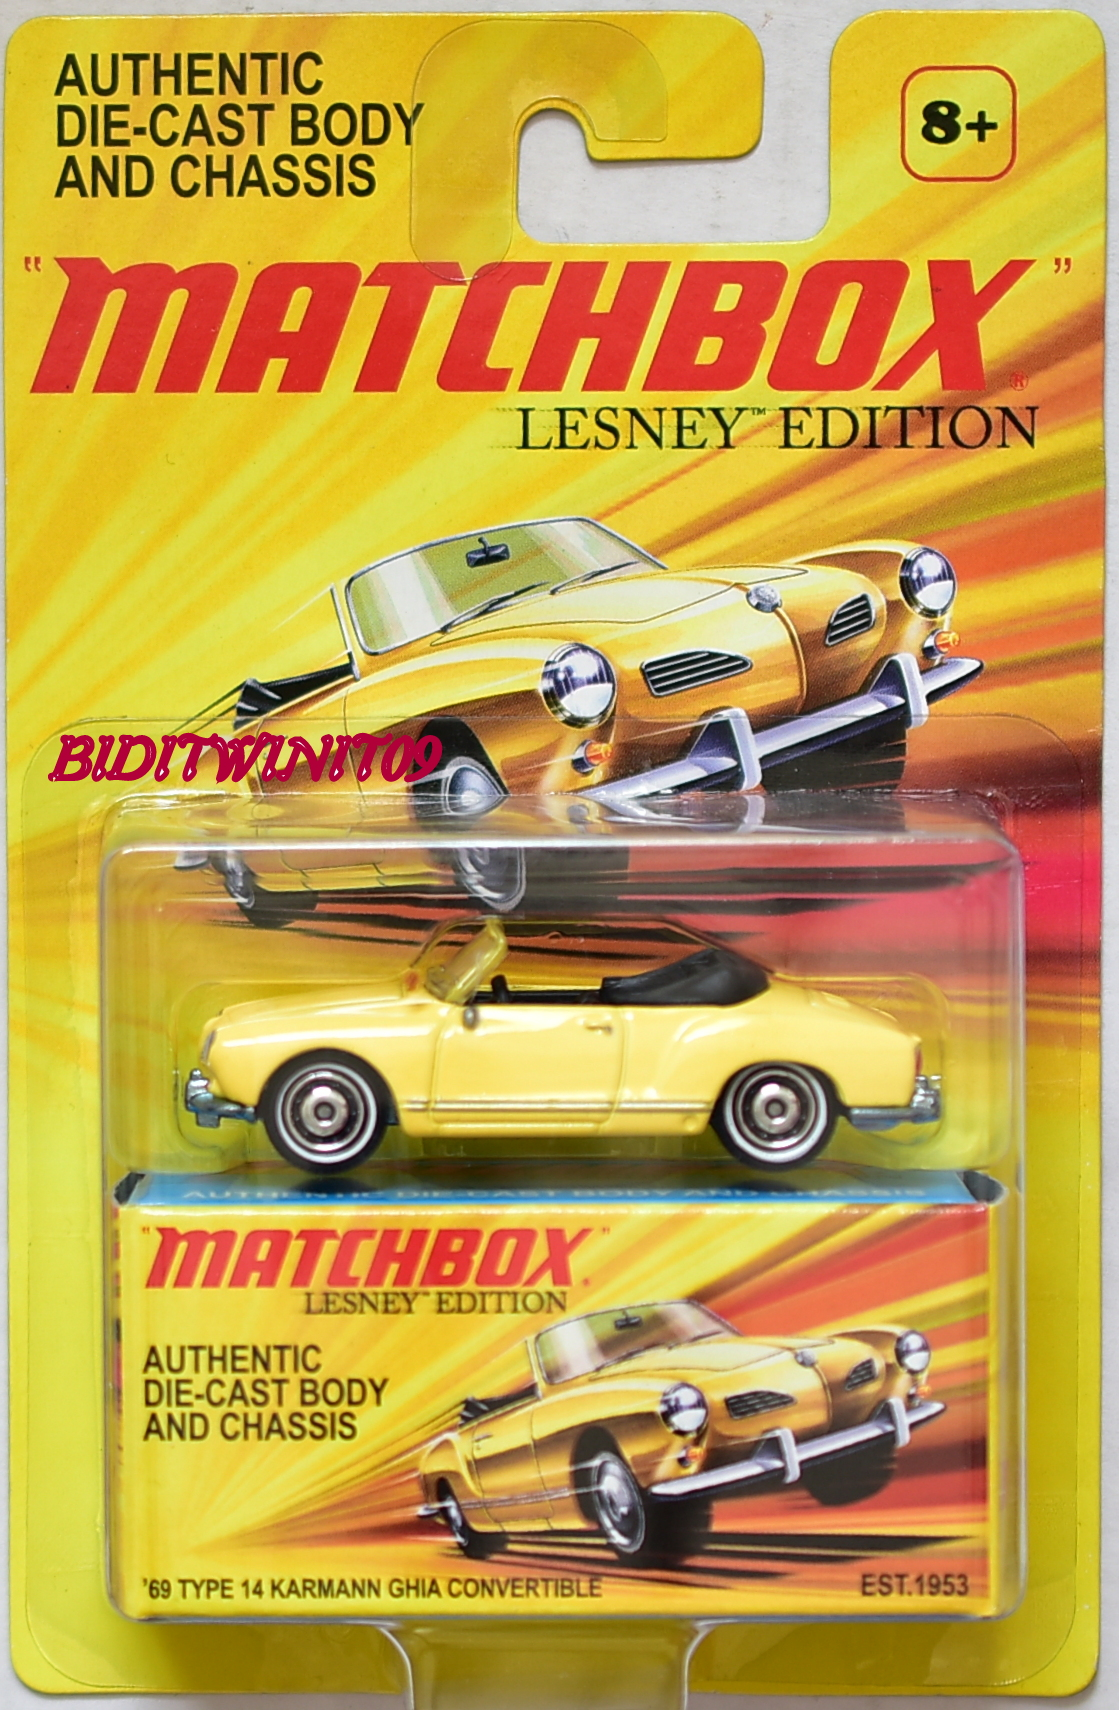 MATCHBOX LESNEY EDITION '69 TYPE 14 KARMANN GHIA CONVERTIBLE E+